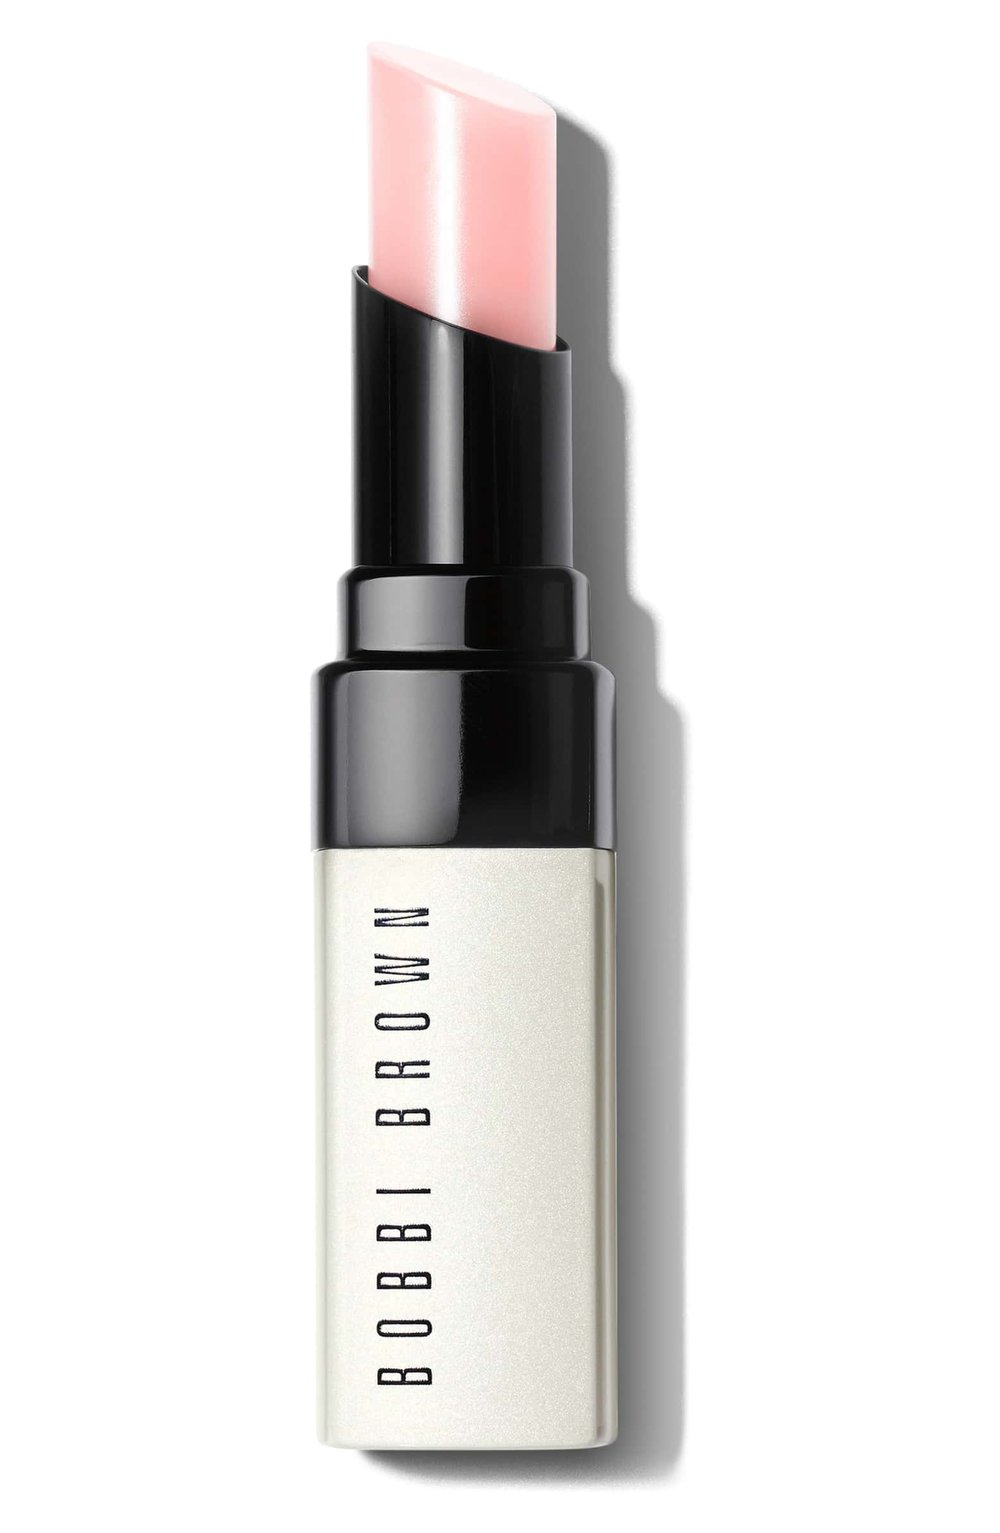 A nourishing lip tint is always crucial, especially during the cold months! This is a favorite of mine by  Bobbi Brown